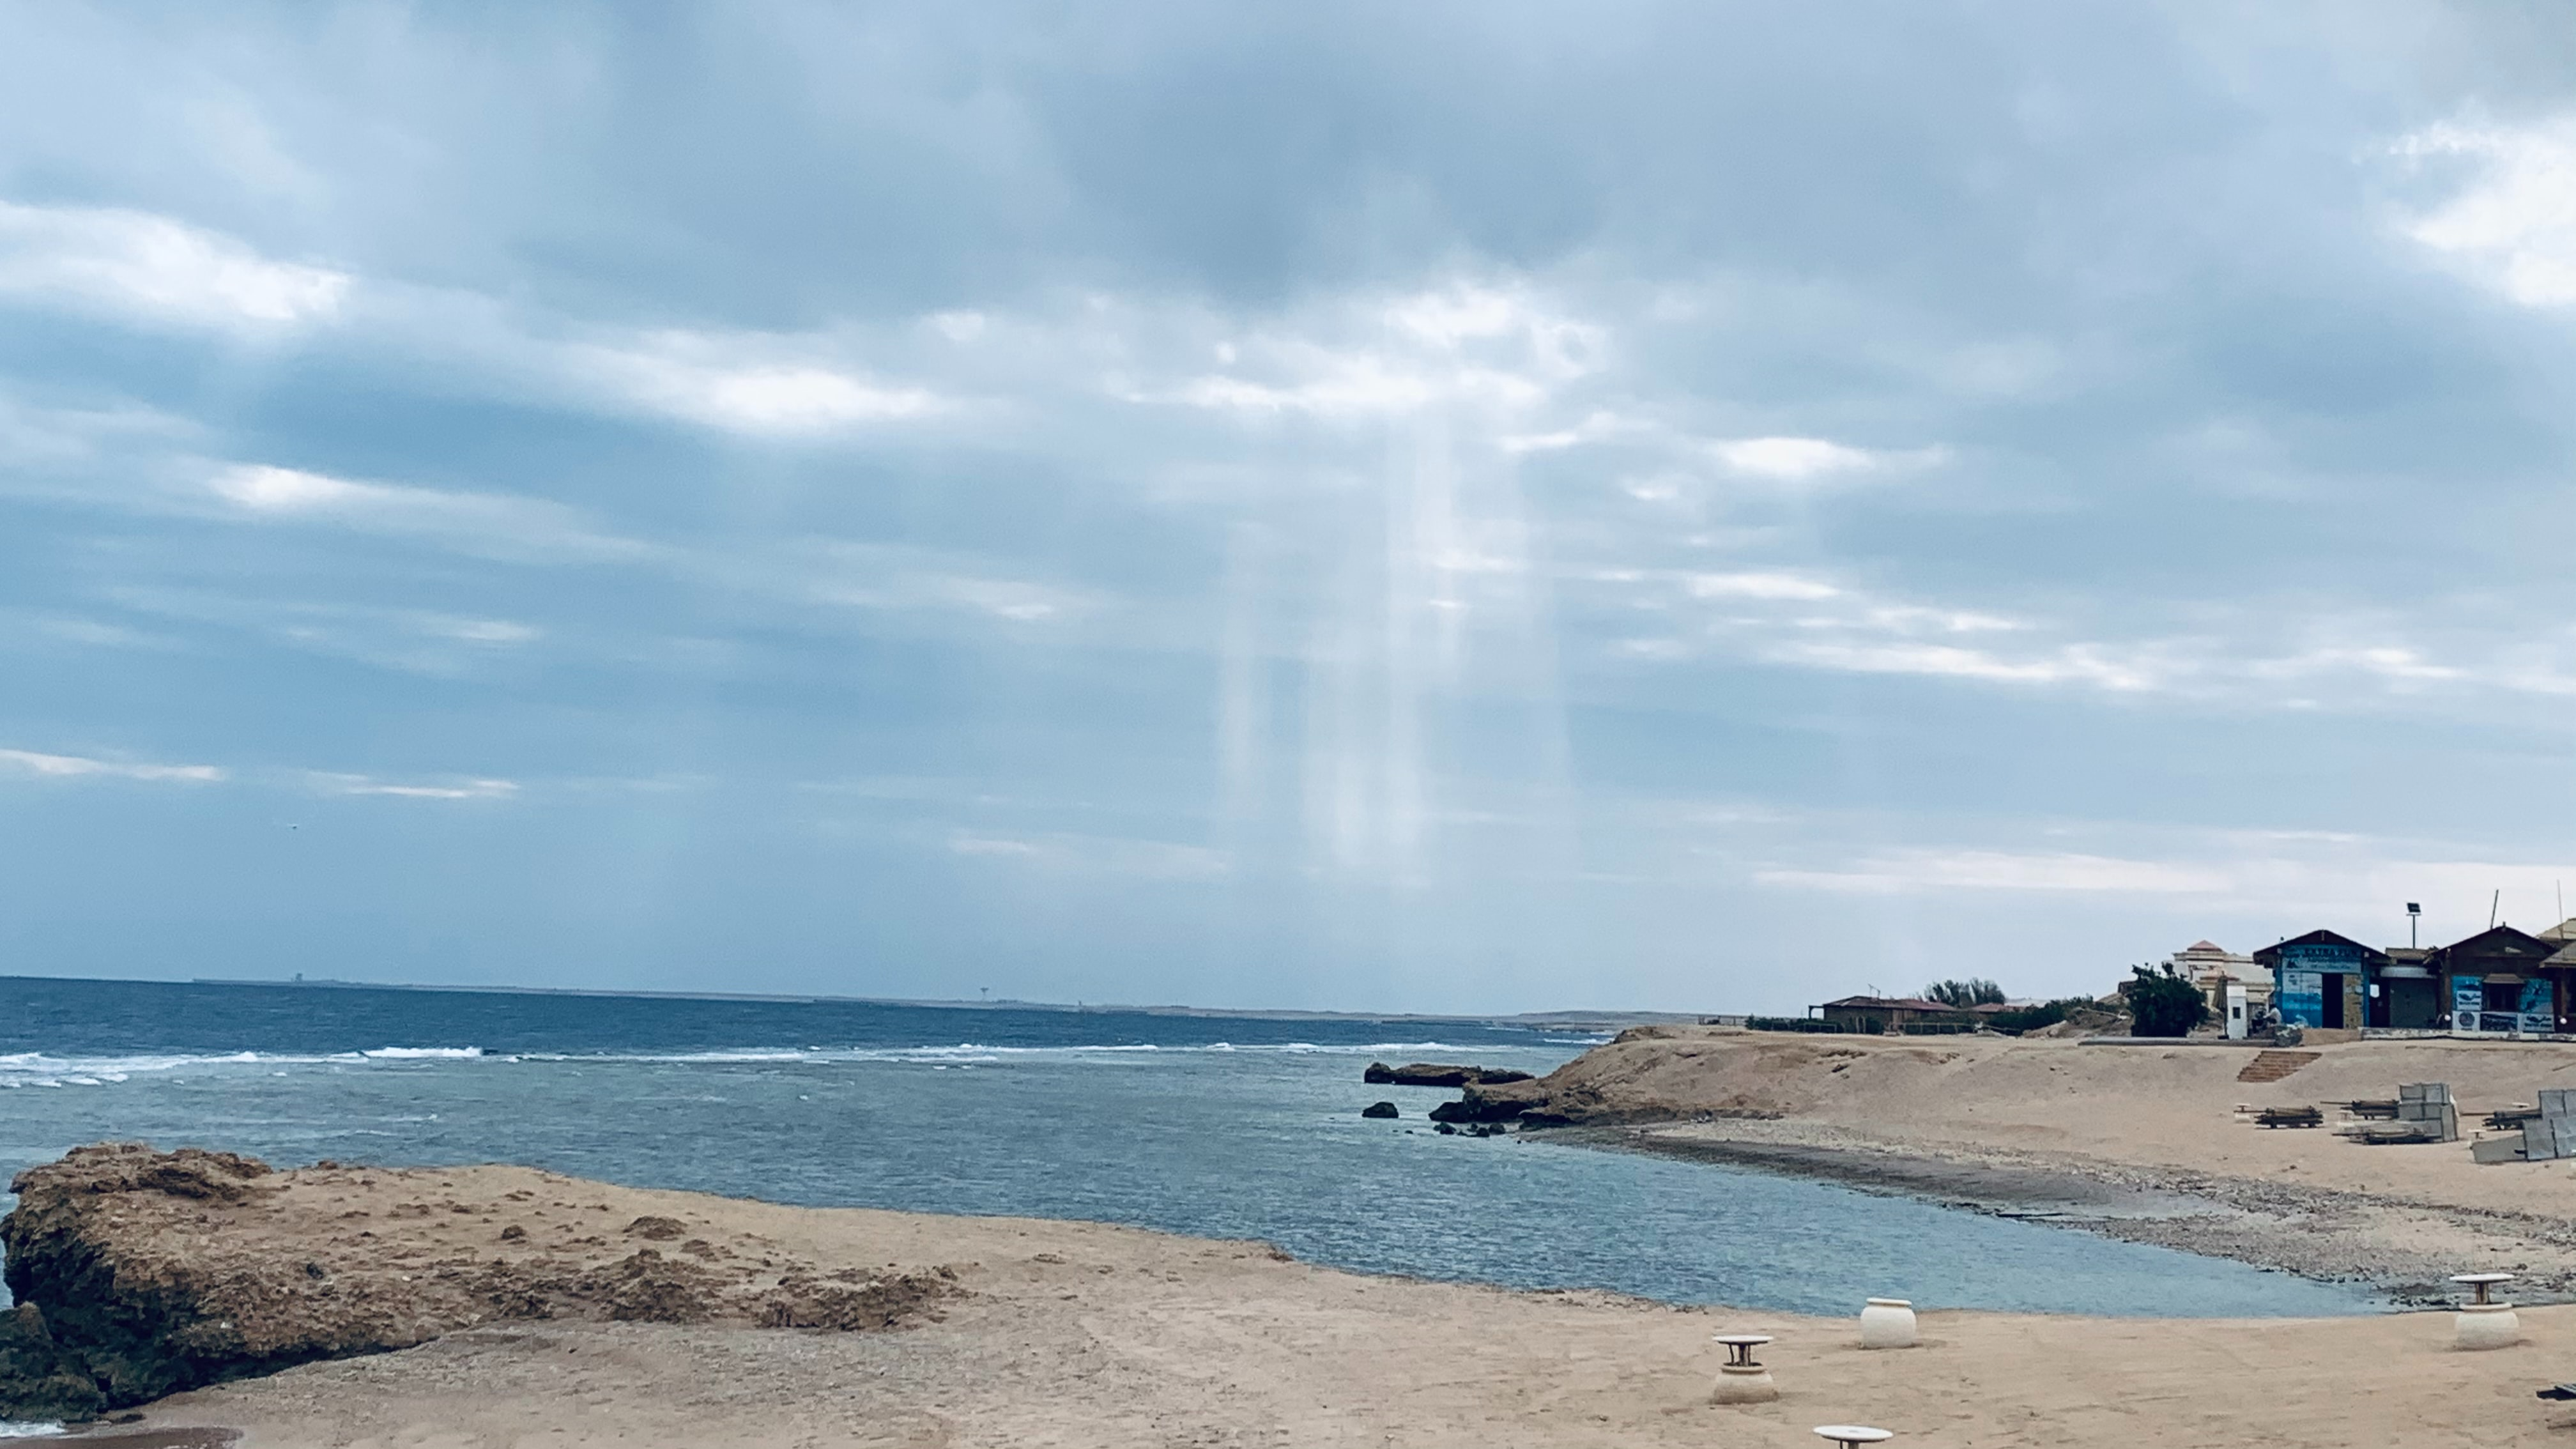 Hurghada-Egypt photo by  Mohamed Gehad